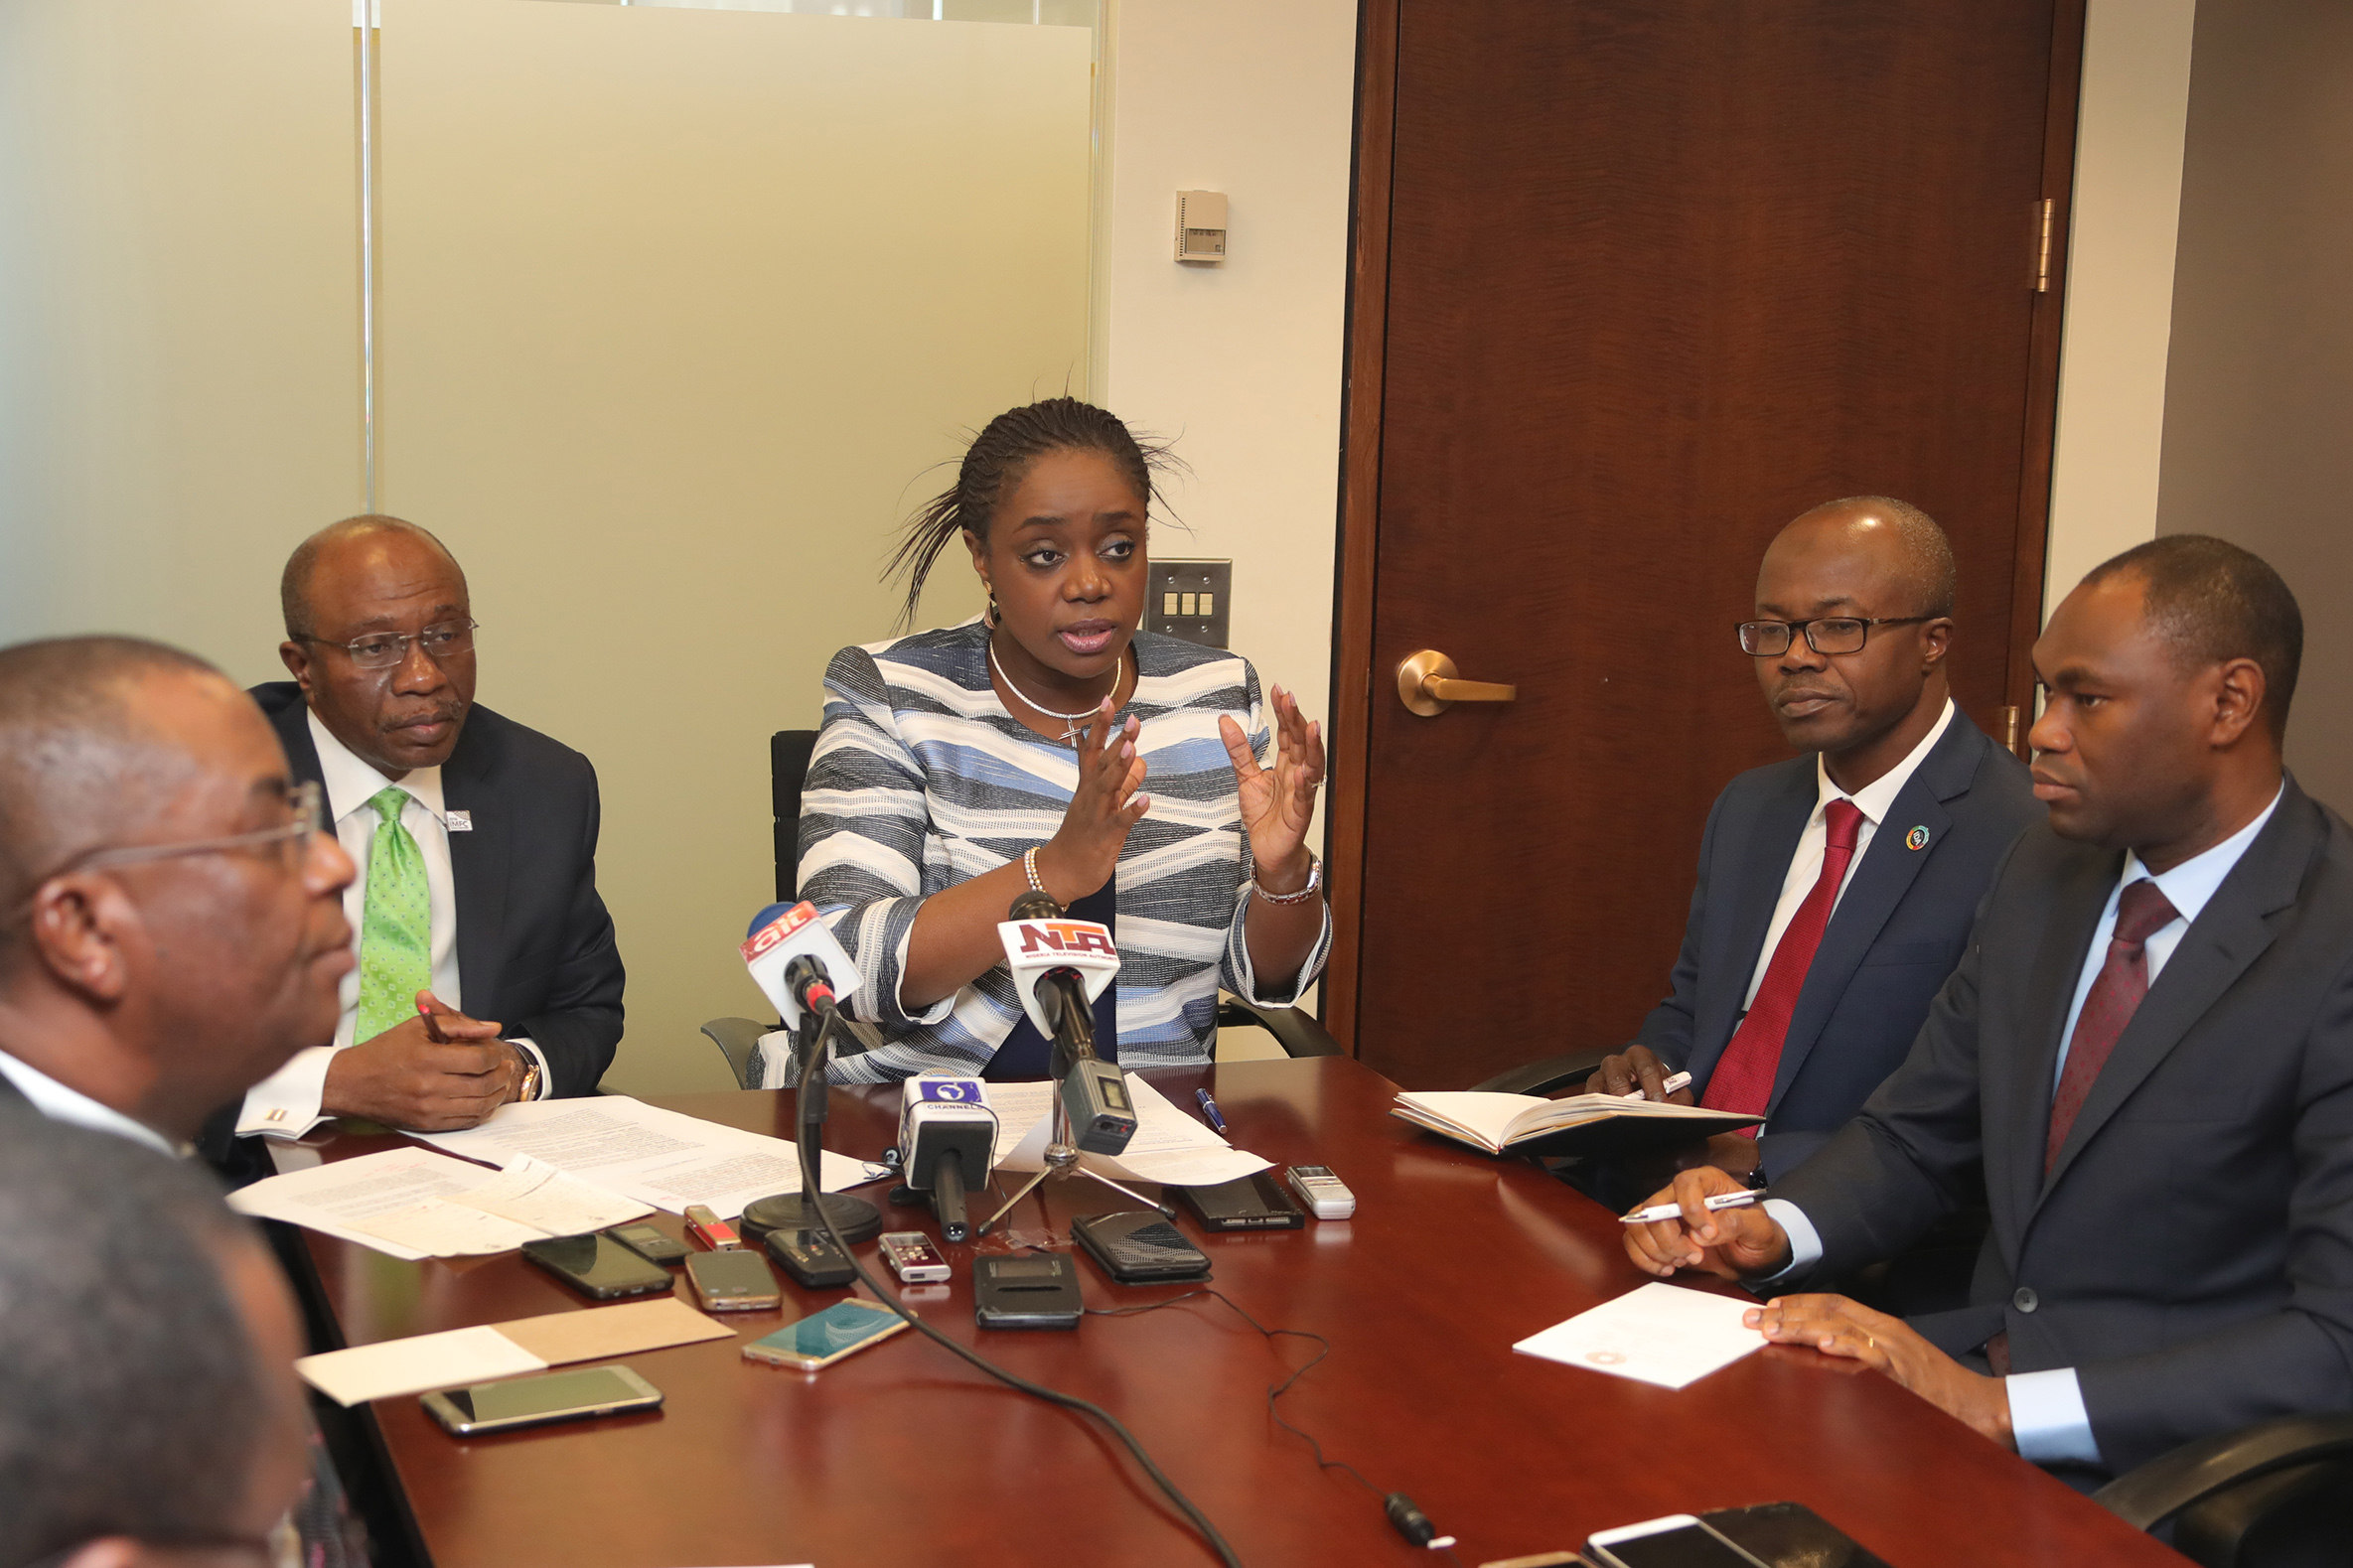 CBN GOV AND FIN MIN BRIEF PRESS. 2.  The Central Bank Governor, Mr Godwin Emefiele, Minister of Finance Mr Kemi Adeosun and others during a press briefing a successful outing at the International Monetary Fund and World Bank Spring Meetings held in Washington DC, APRIL 22 2018.